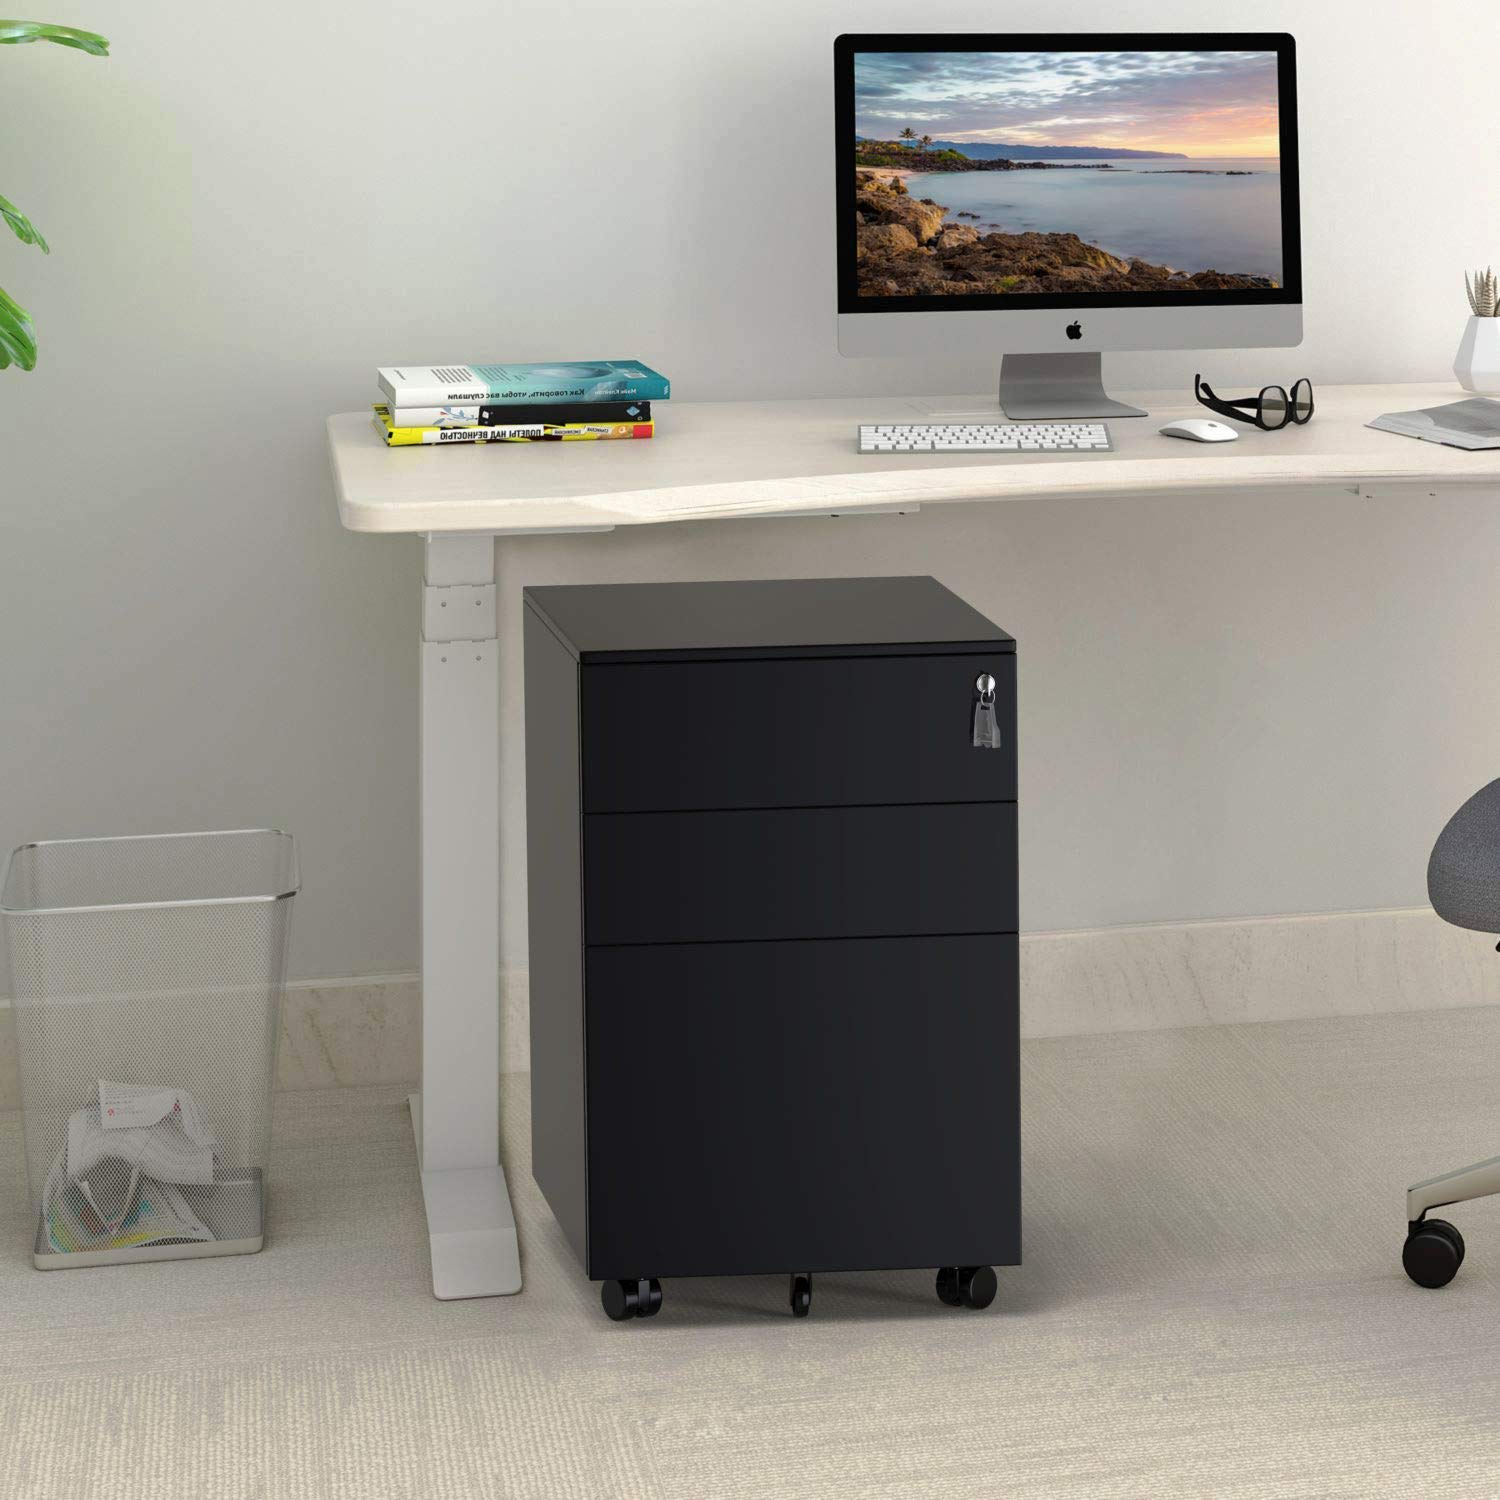 ModernLuxe File Cabinet 3 Drawer Metal Mobile File Cabinet with Lock Fully-Assembled Except Casters (Black) by ModernLuxe (Image #7)